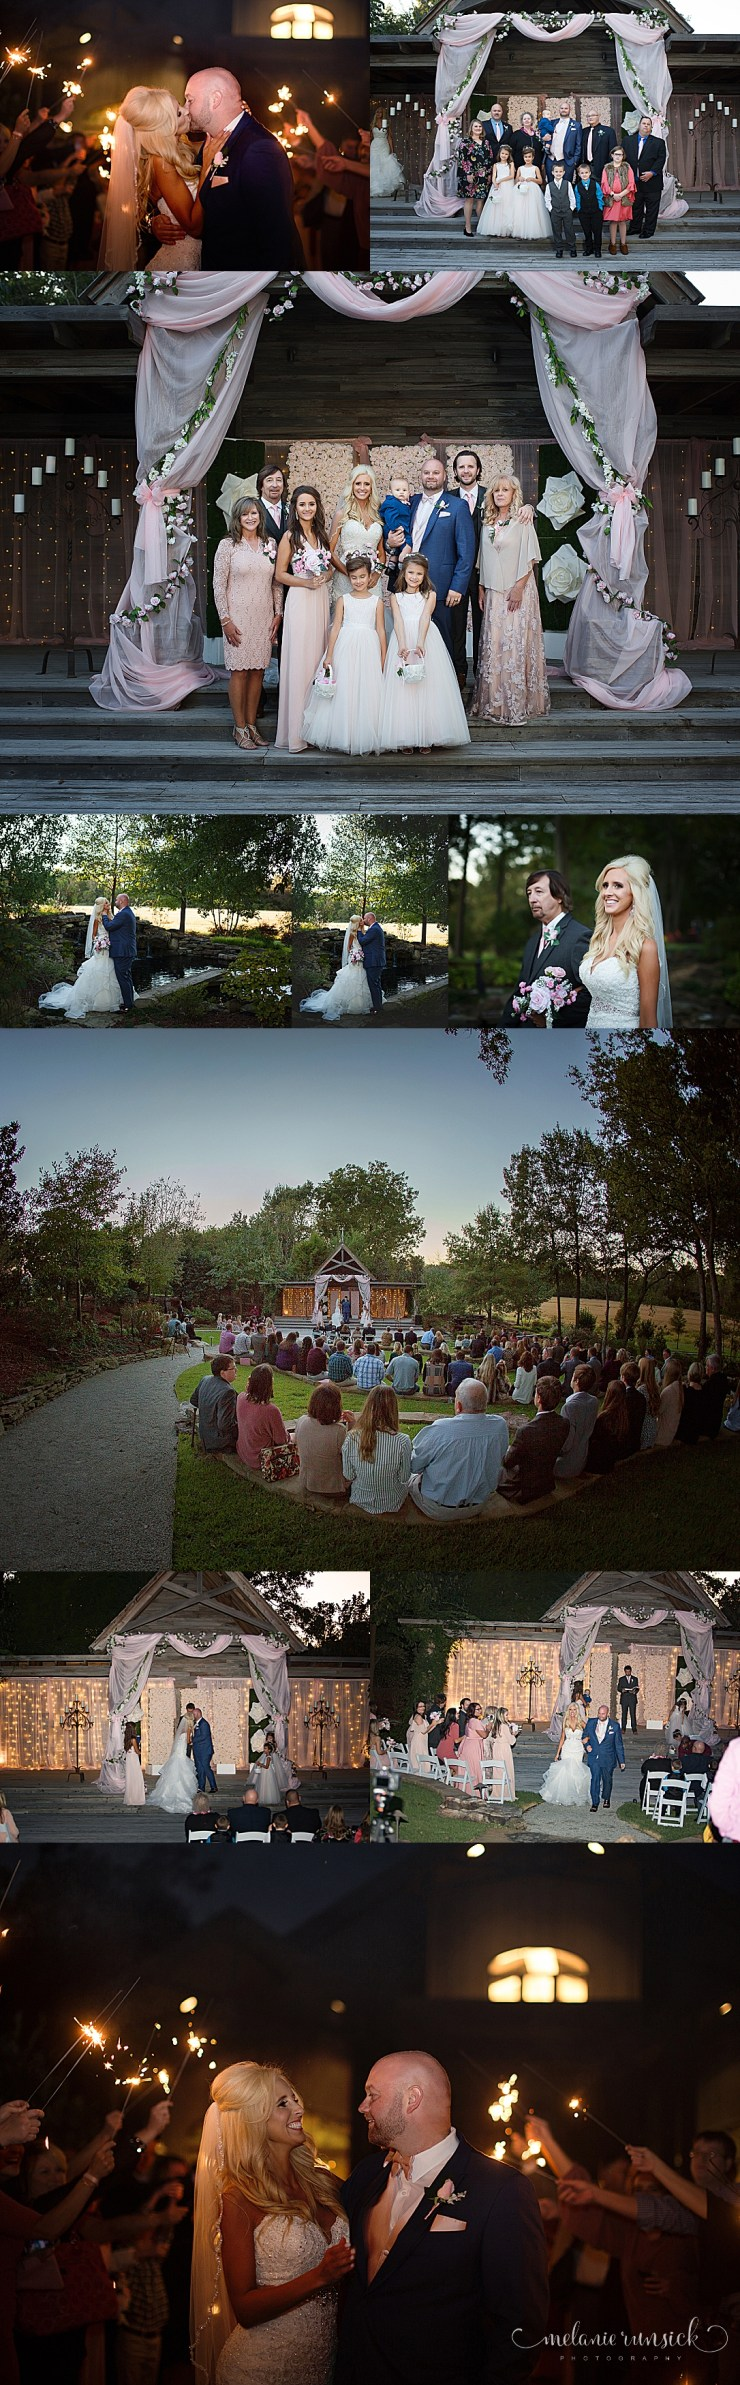 Northeast Arkansas Wedding Photographer Melanie Runsick